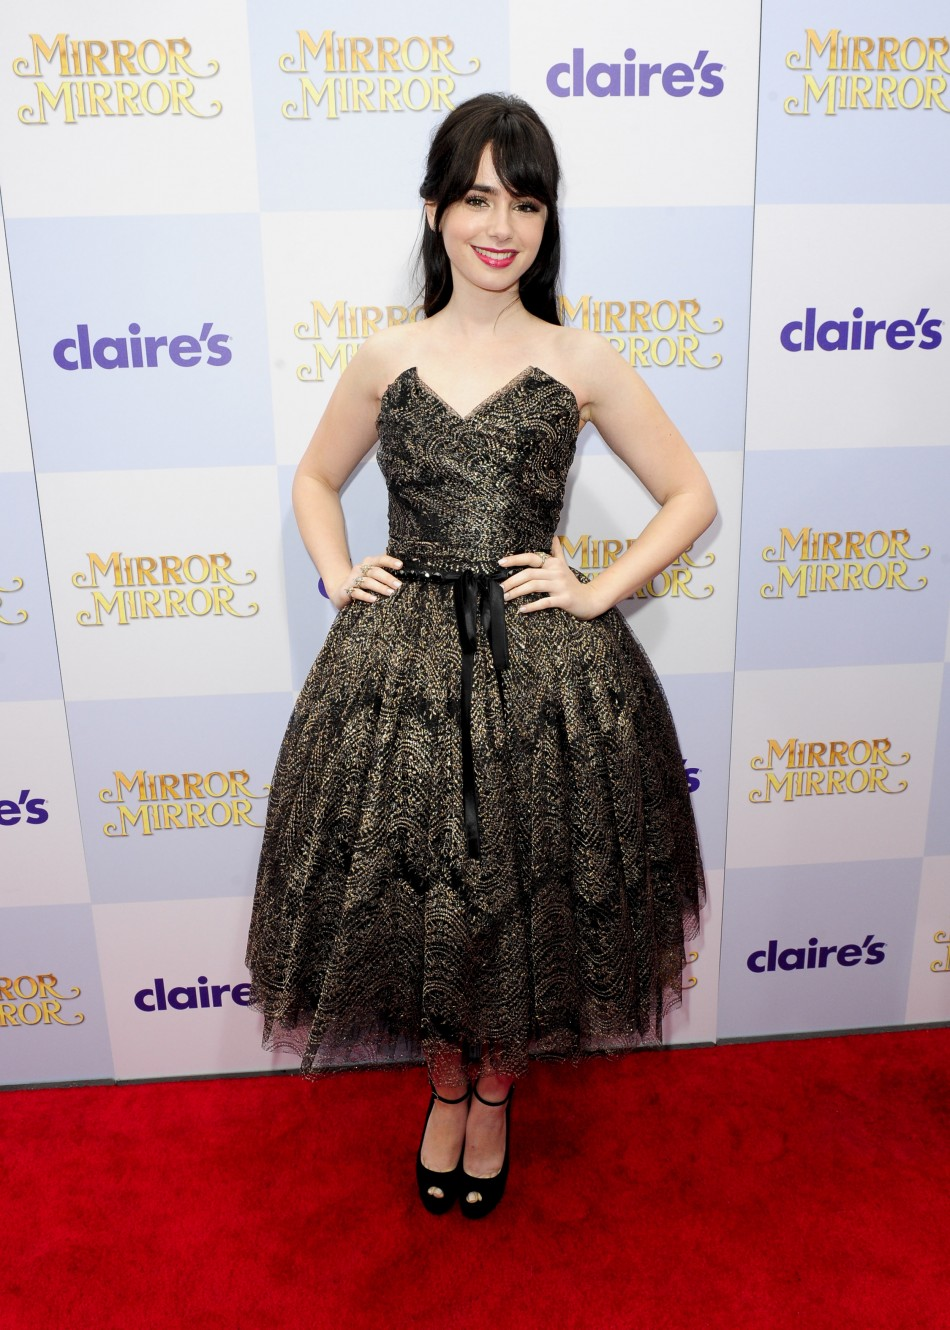 British actress Lily Collins was voted fourth most beautiful woman of 2012 by People Magazine